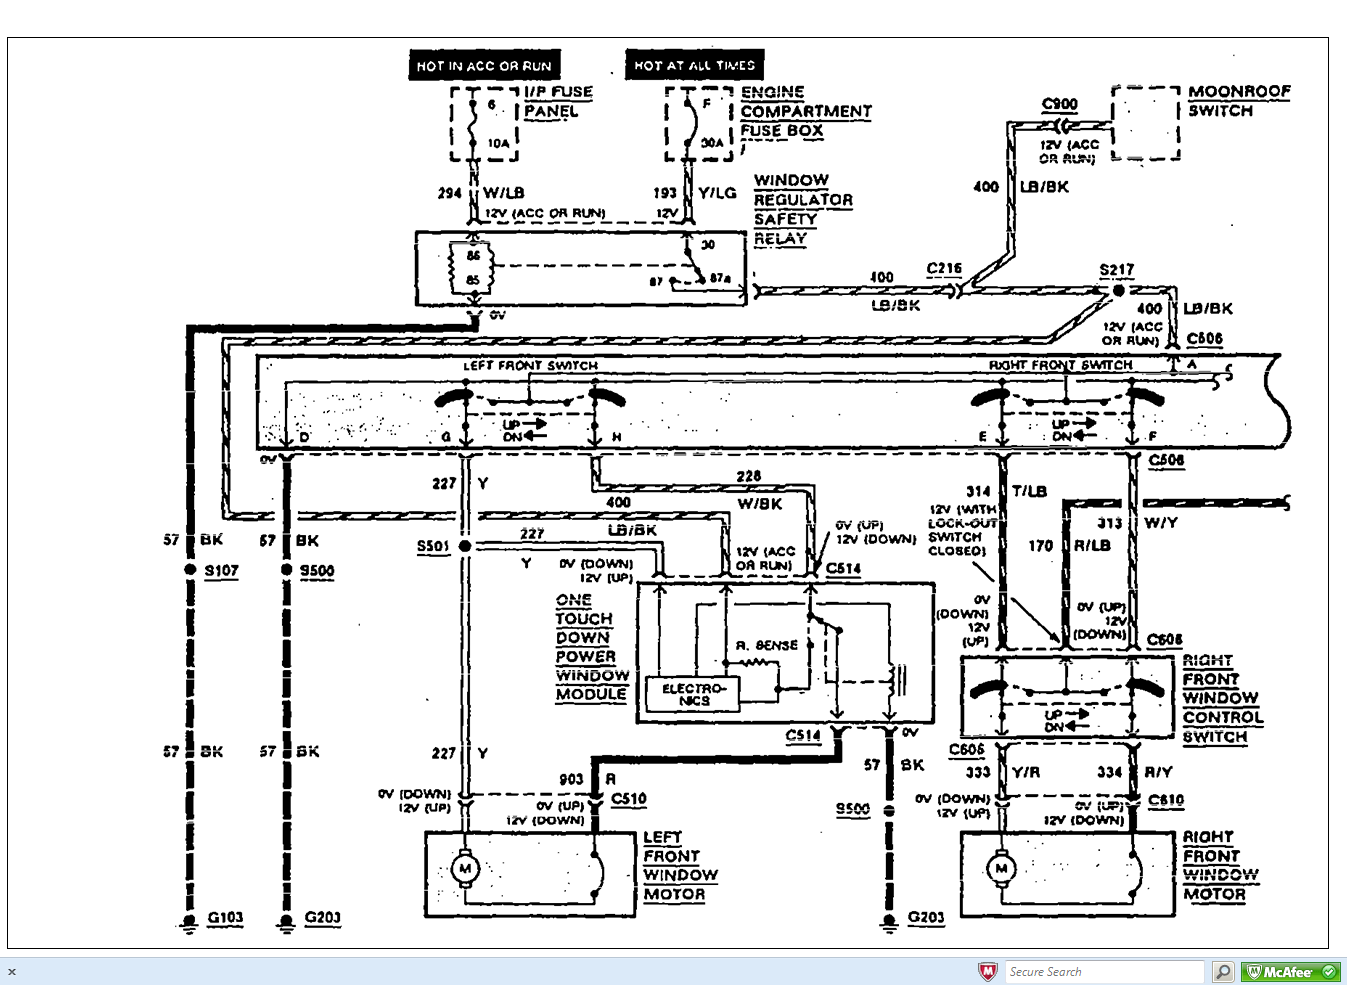 i needed to see where i can find a complete power window wiring diagram for a 1993 lincoln town ... power window switch wiring diagram 1999 lincoln